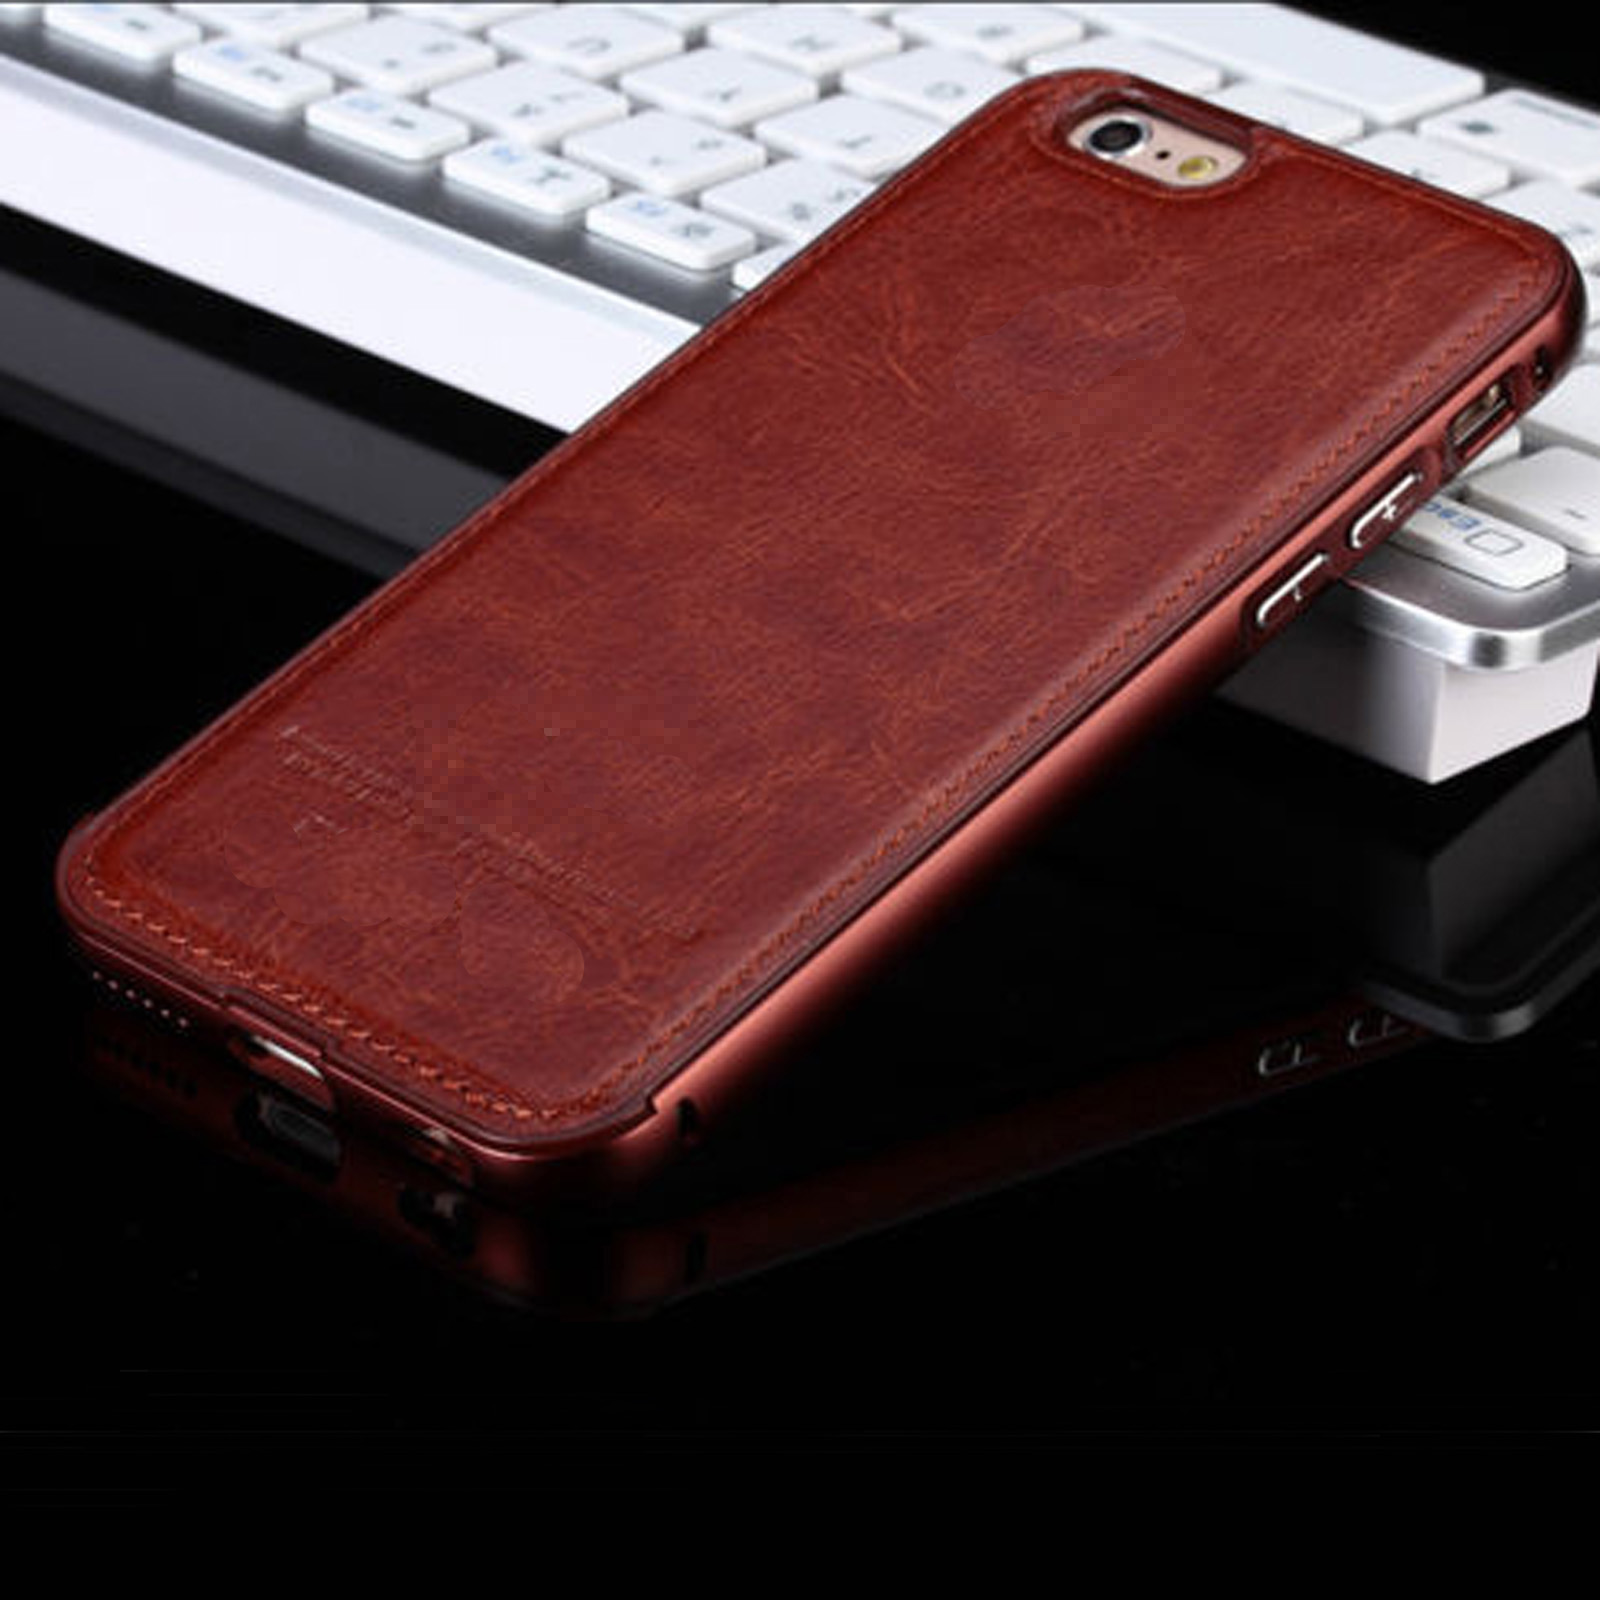 Luxury original leather back case cover for apple iphone 7 plus 6s plus 6 5s 4s ebay - Iphone 5s leather case ...